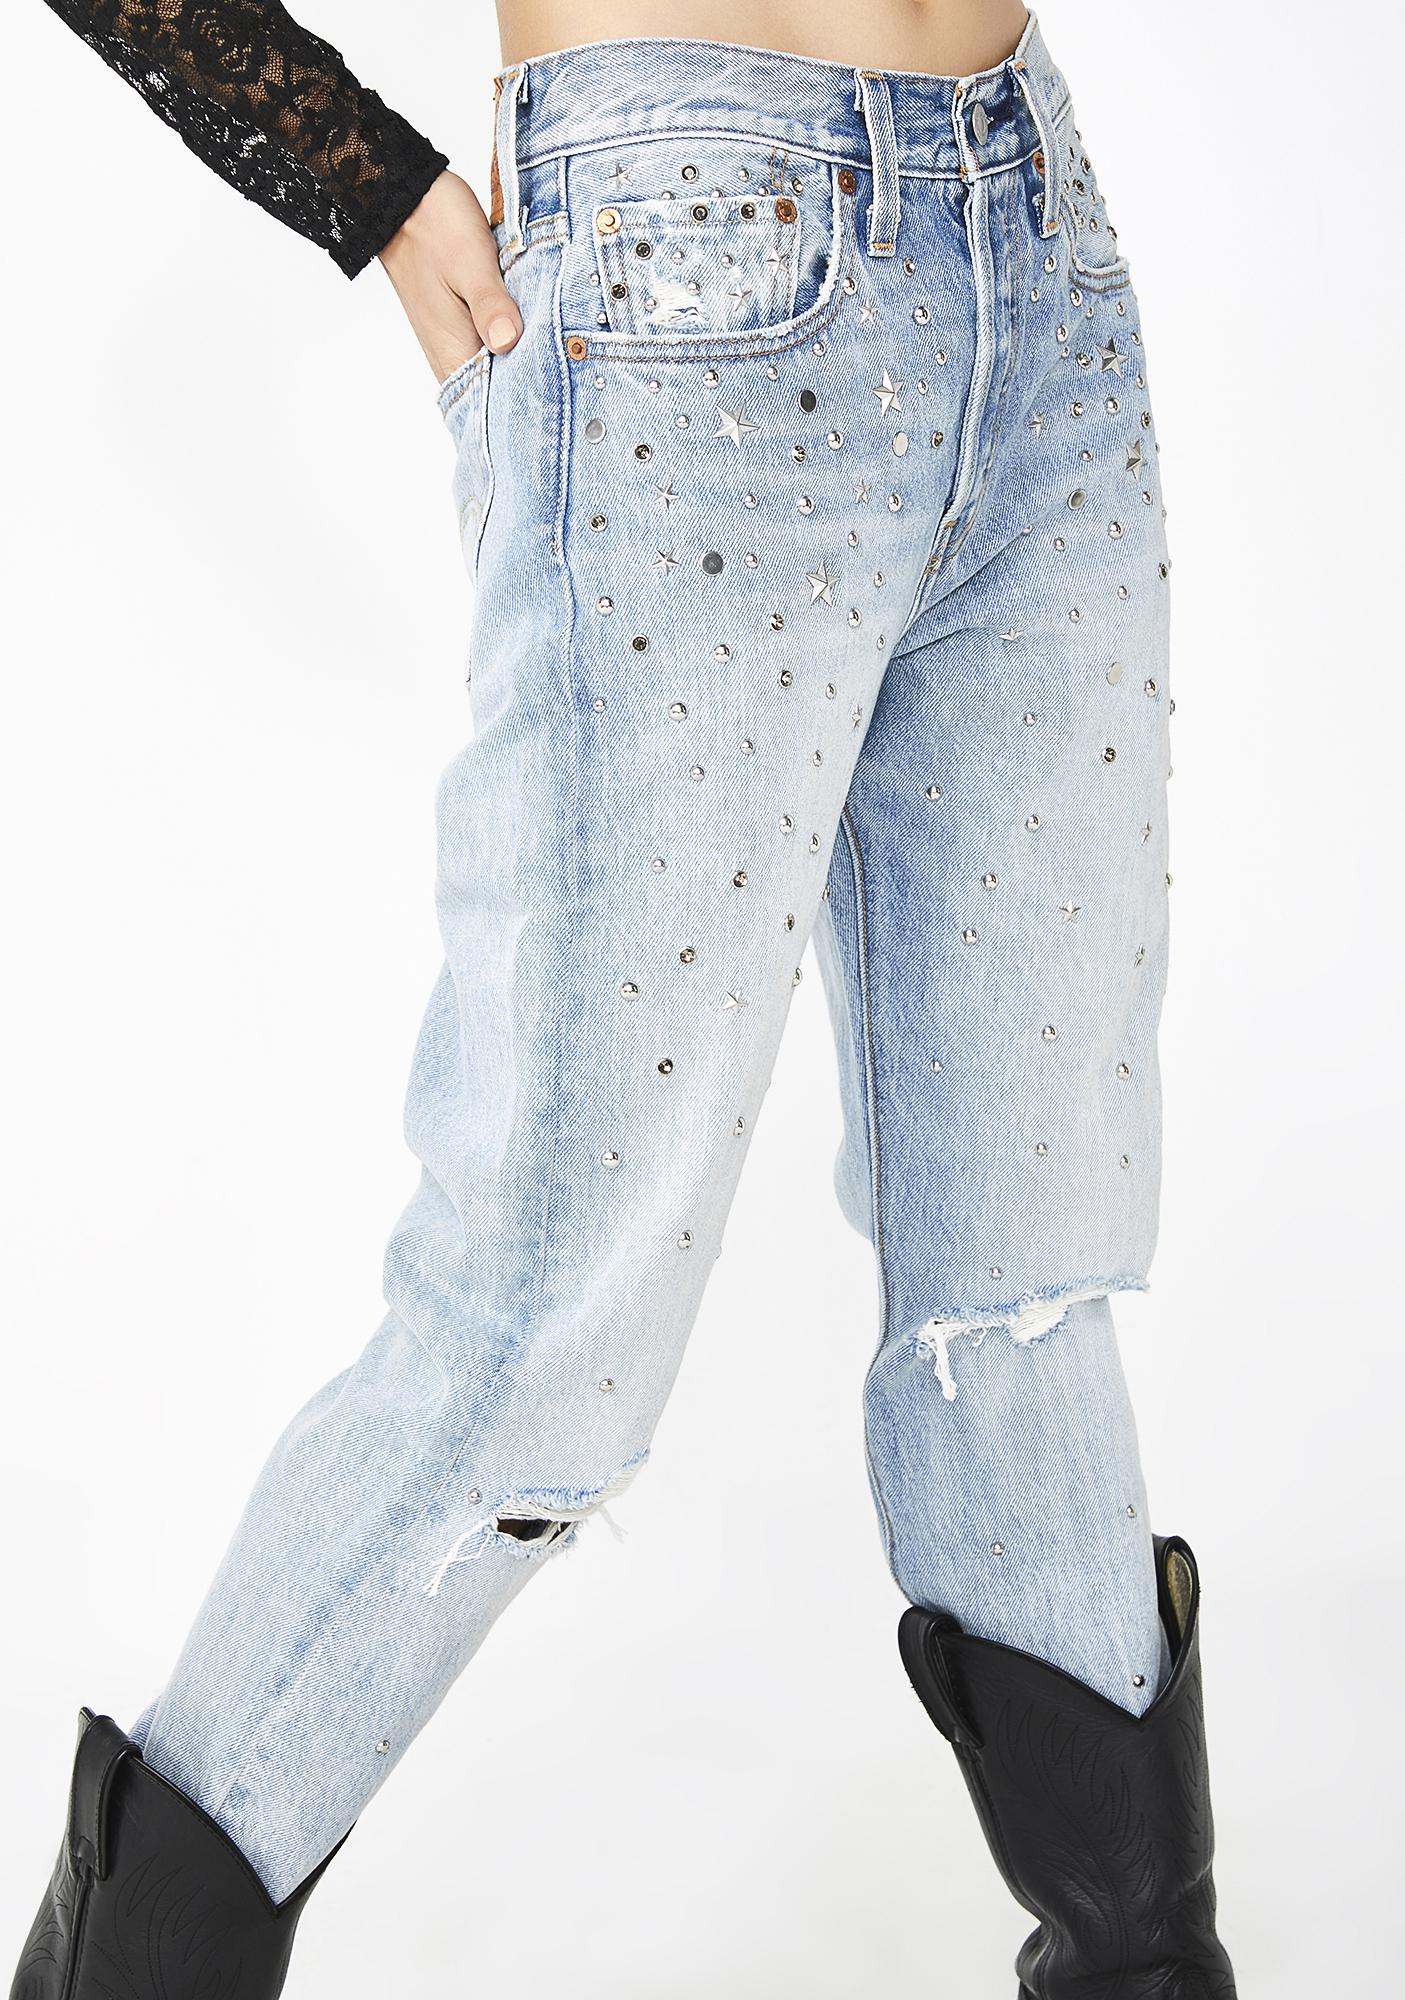 Levis Counting Stars 501 Skinny Jeans